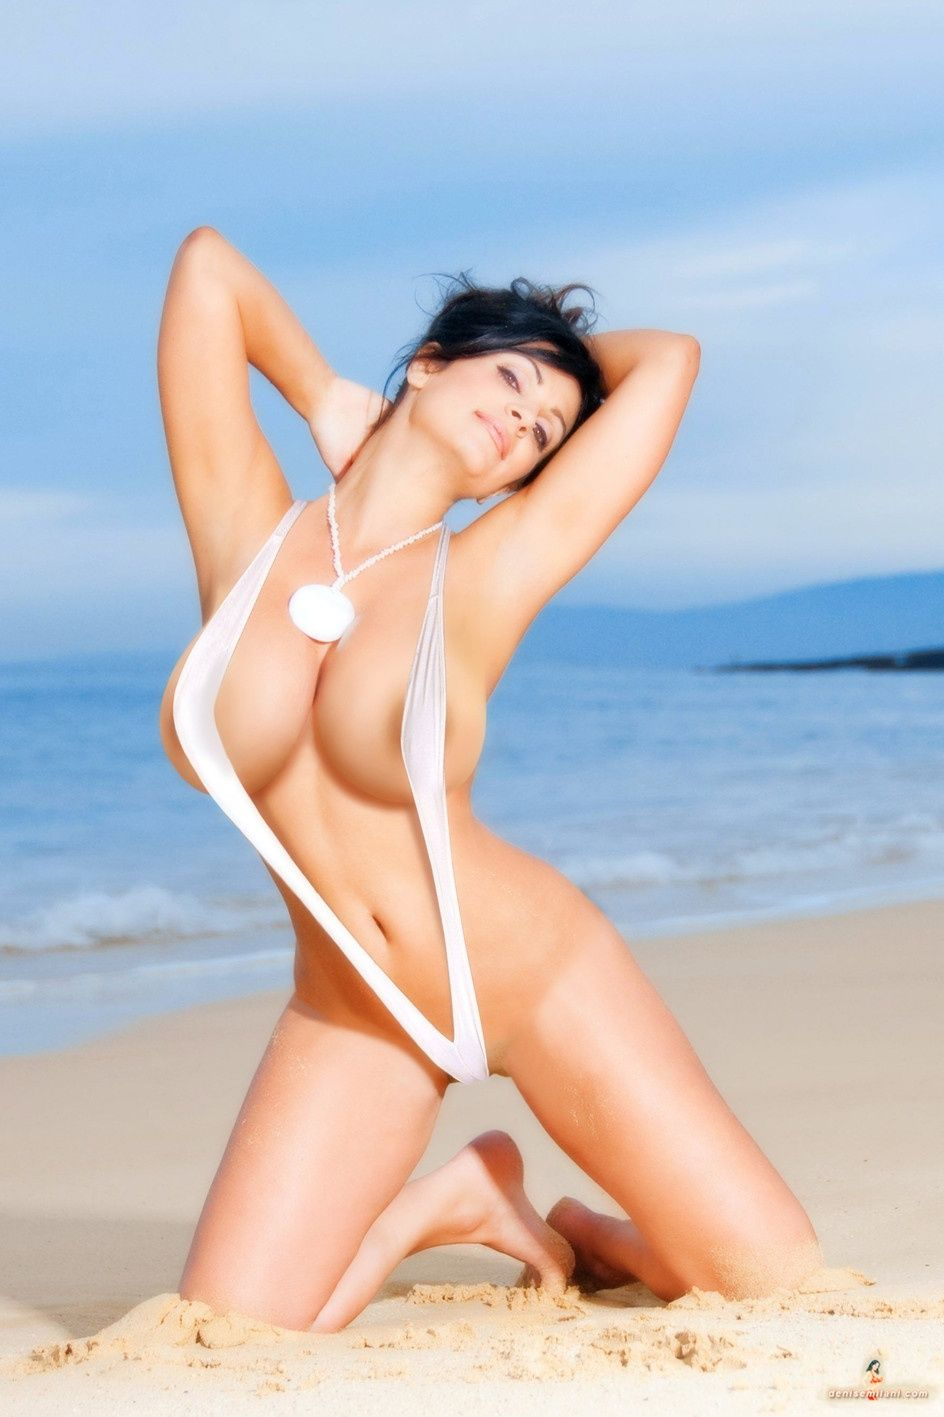 Denise milani nude in beach